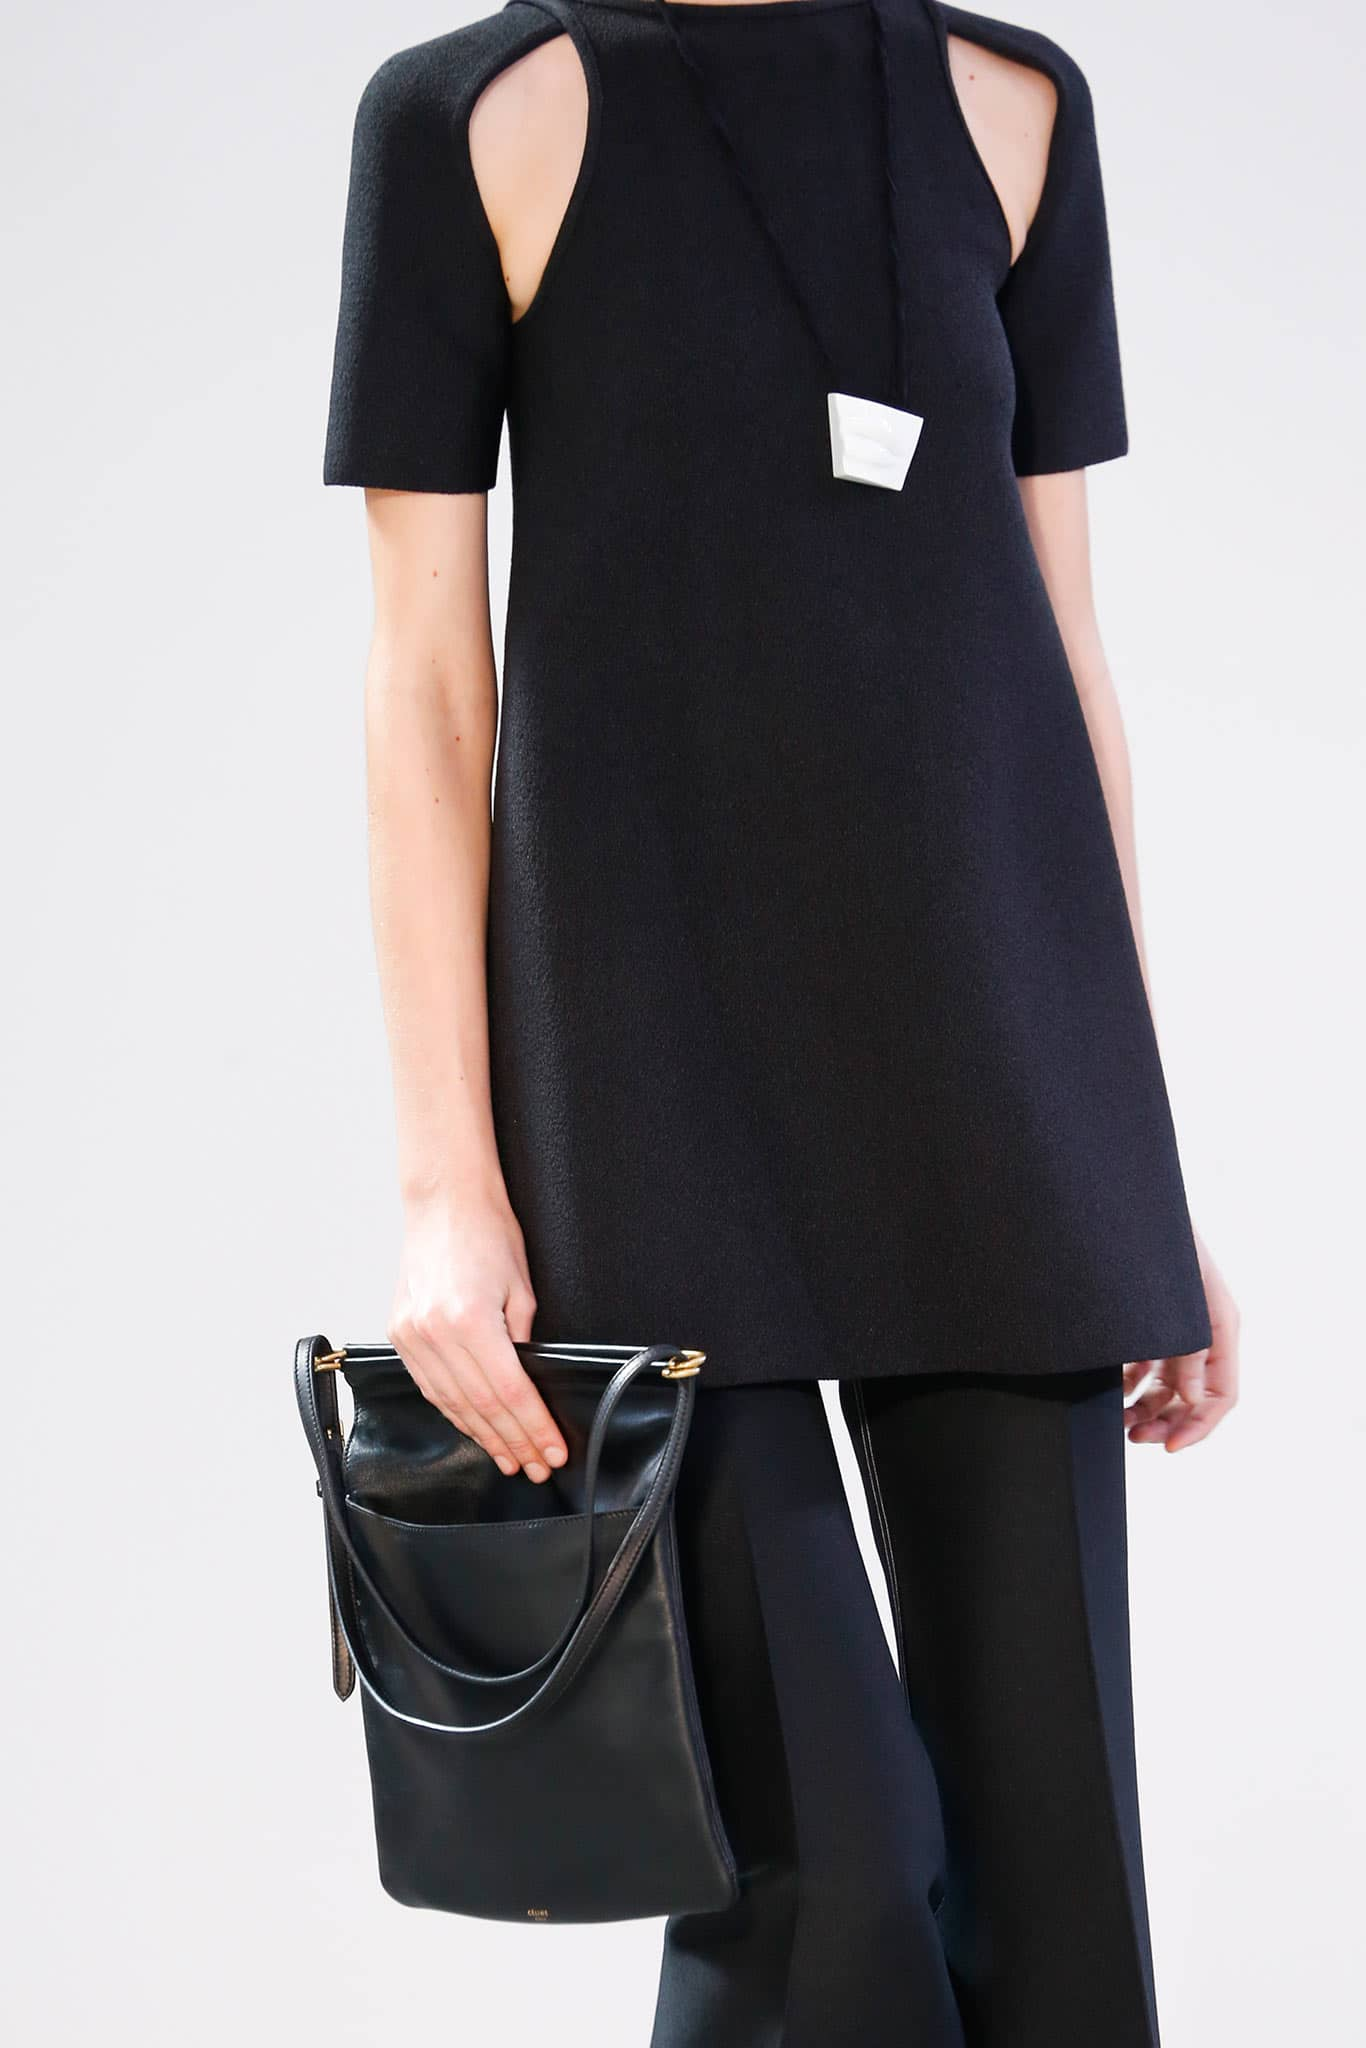 Celine-Black-Shoulder-Bag-Spring-2015.jpg